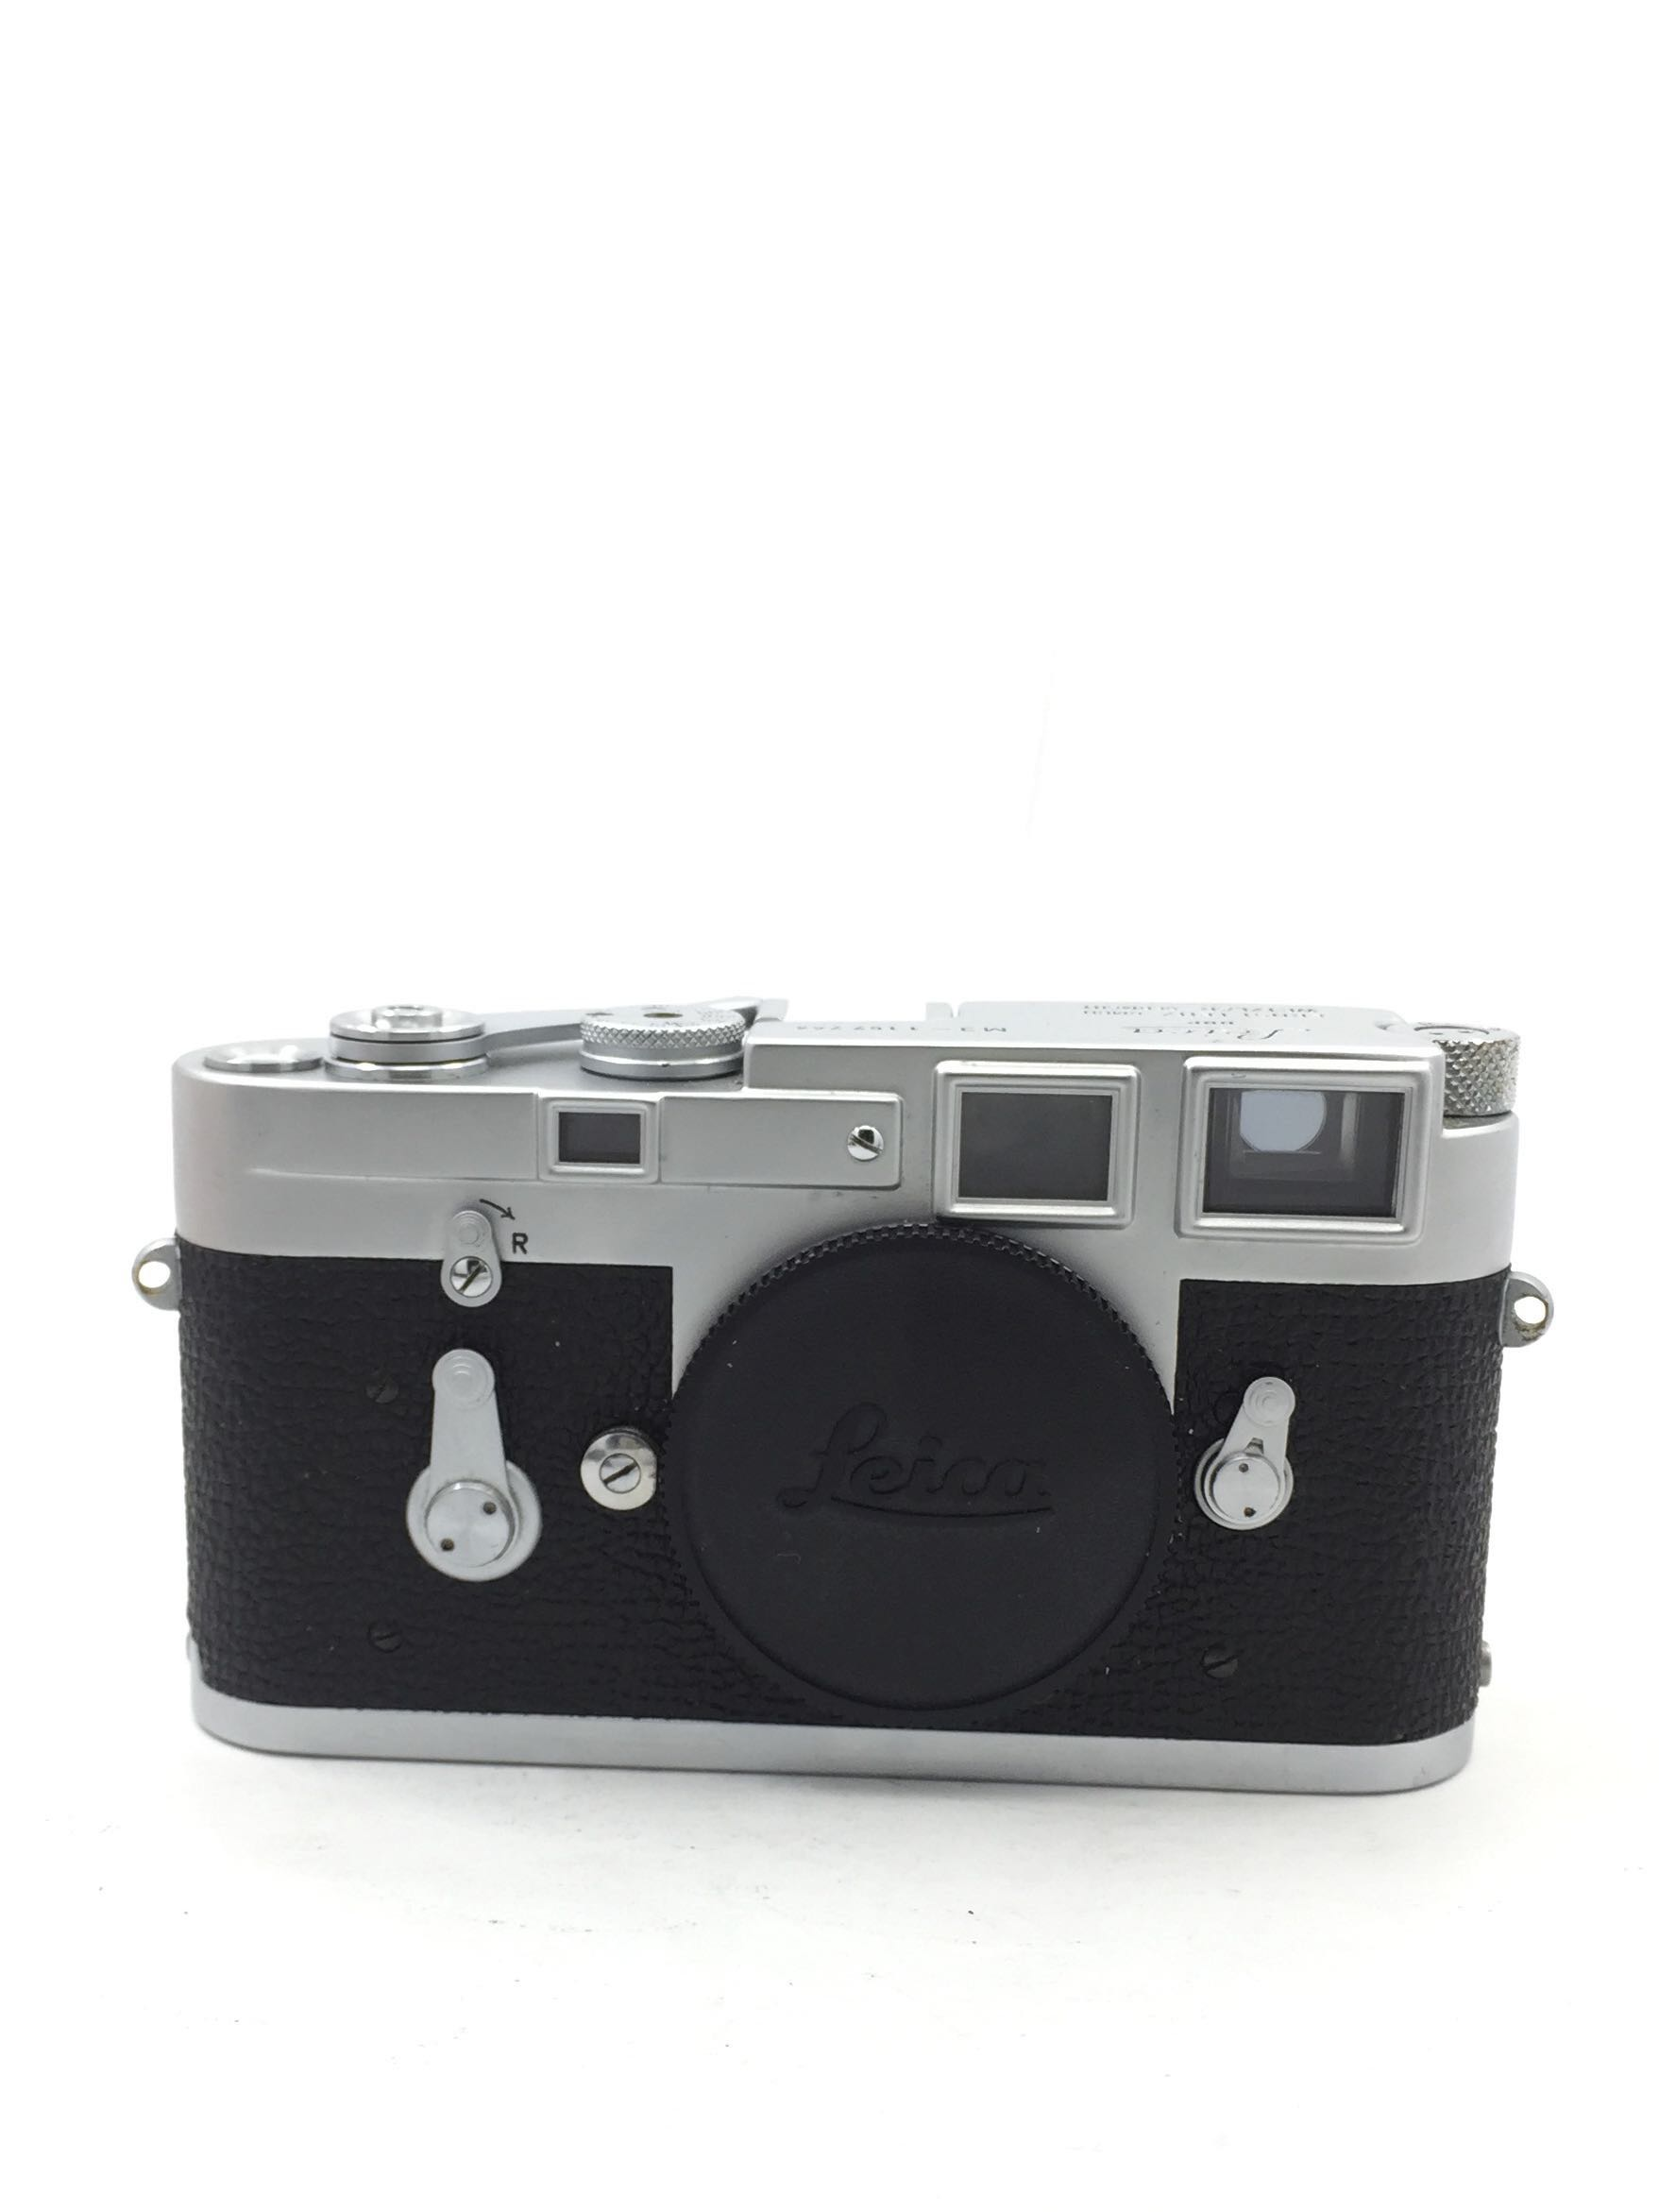 Leica M3 Single Stroke, Photography, Cameras, Others on